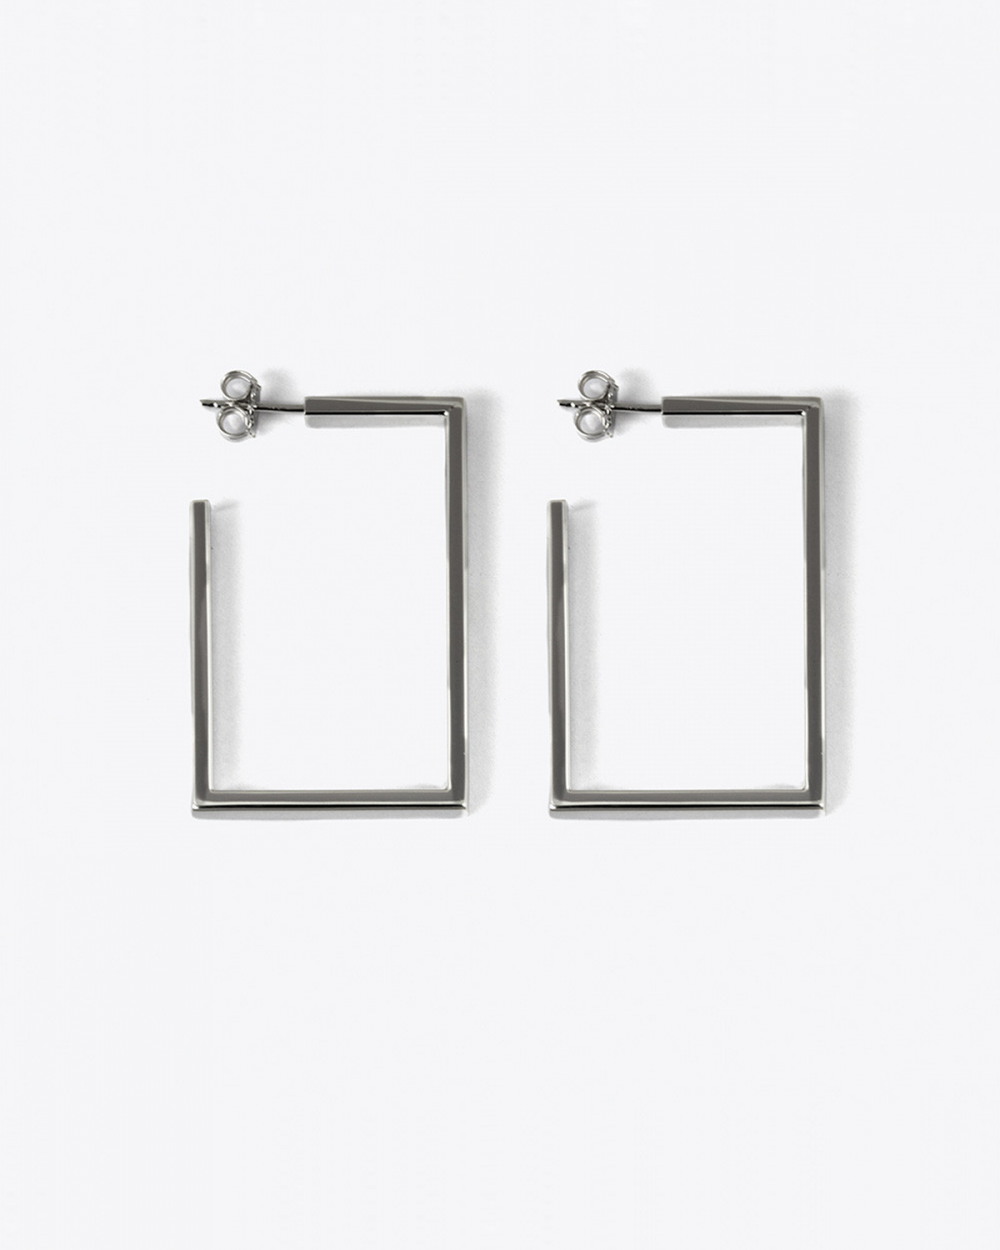 Earrings RUTHENIUM RECTANGULAR THREAD HOOP PAIR EARRINGS NOVE25